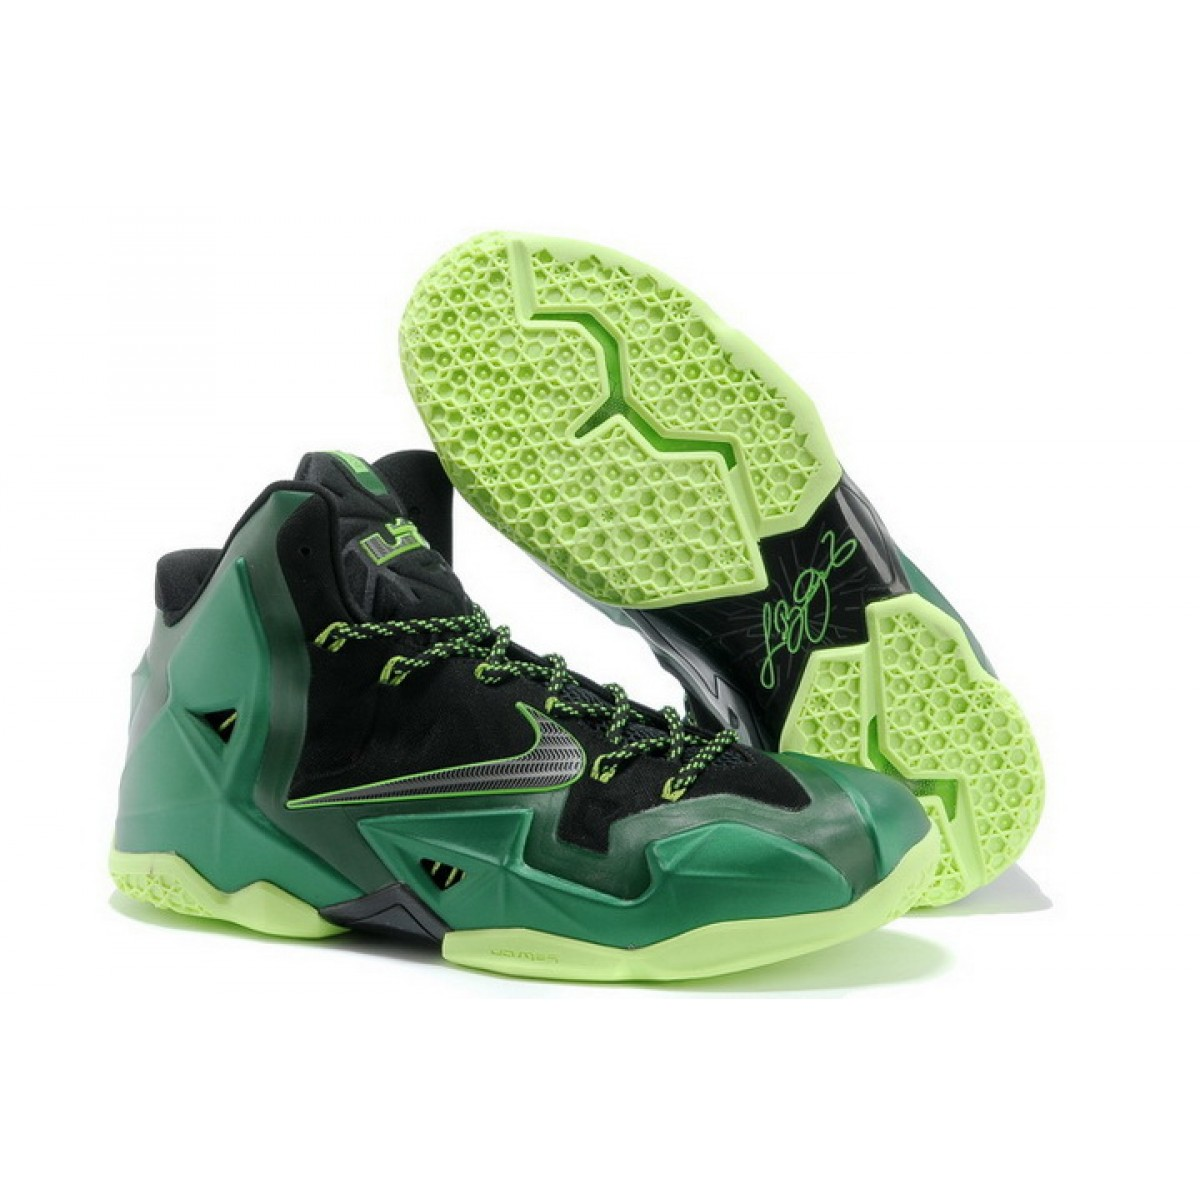 Nike Lebron 11 Dark Green Black Shoes